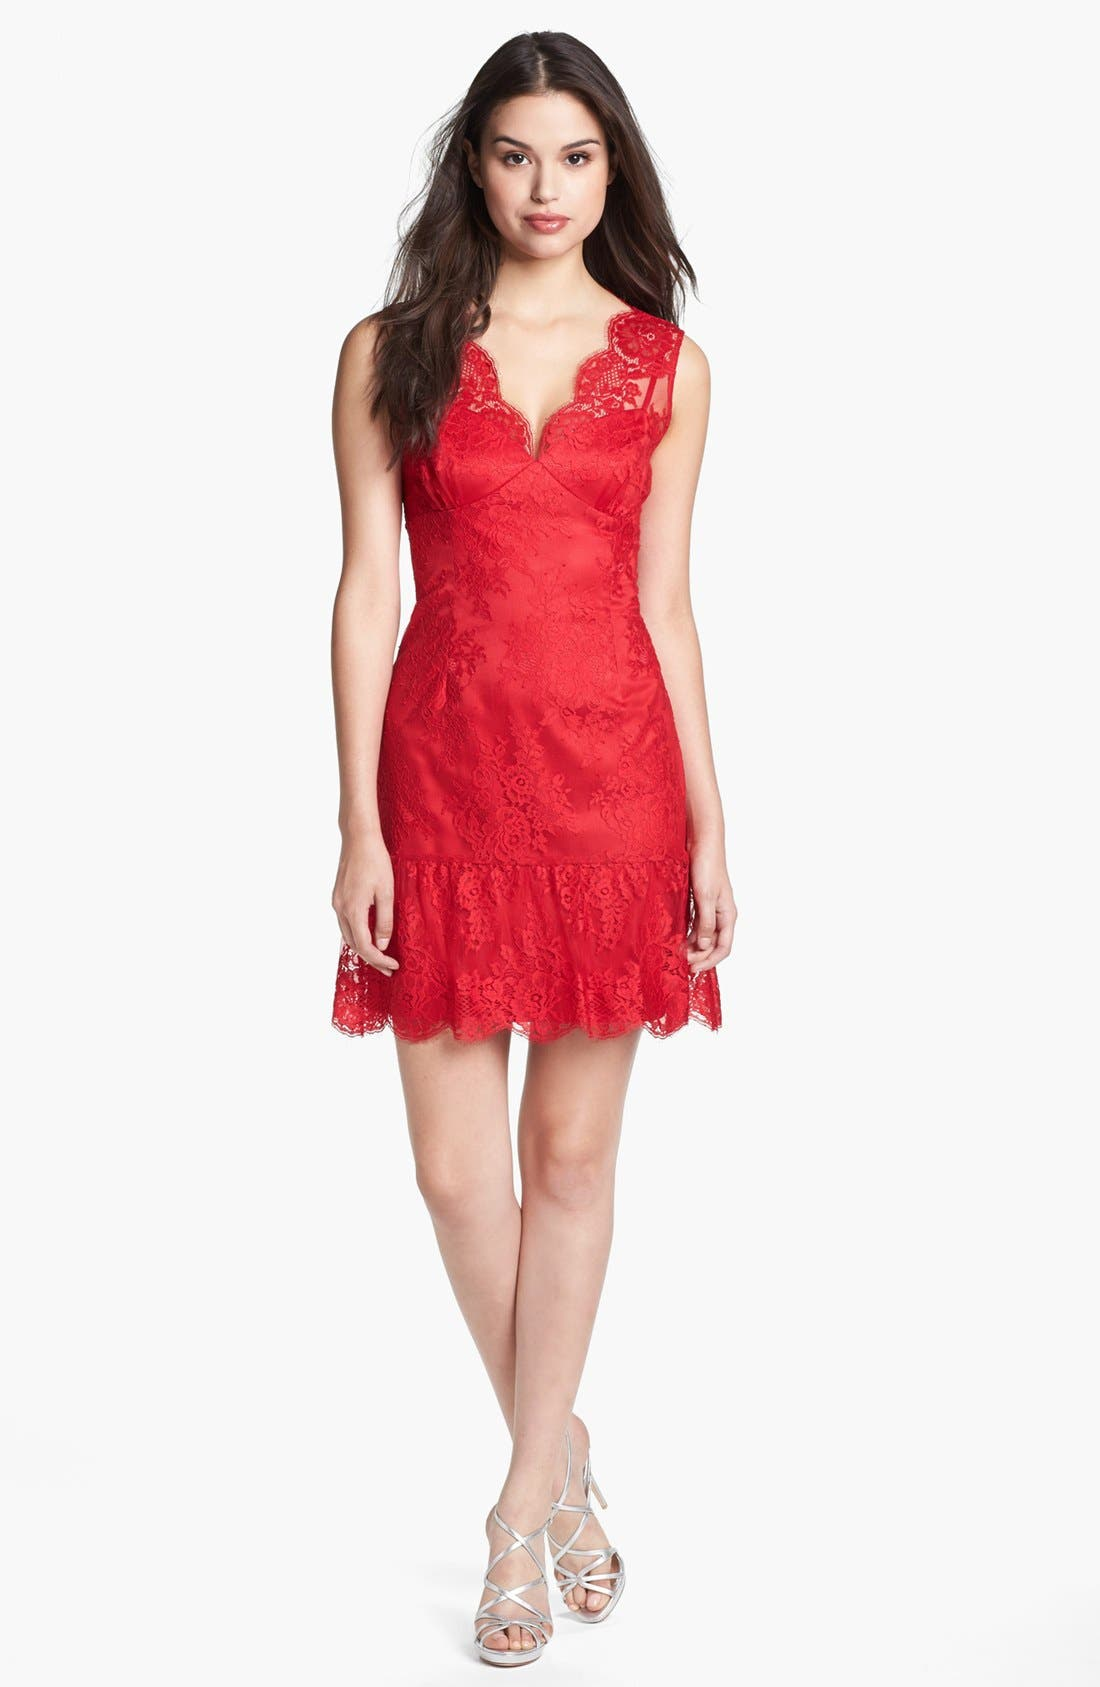 Main Image - Adrianna Papell Chantilly Lace Dress